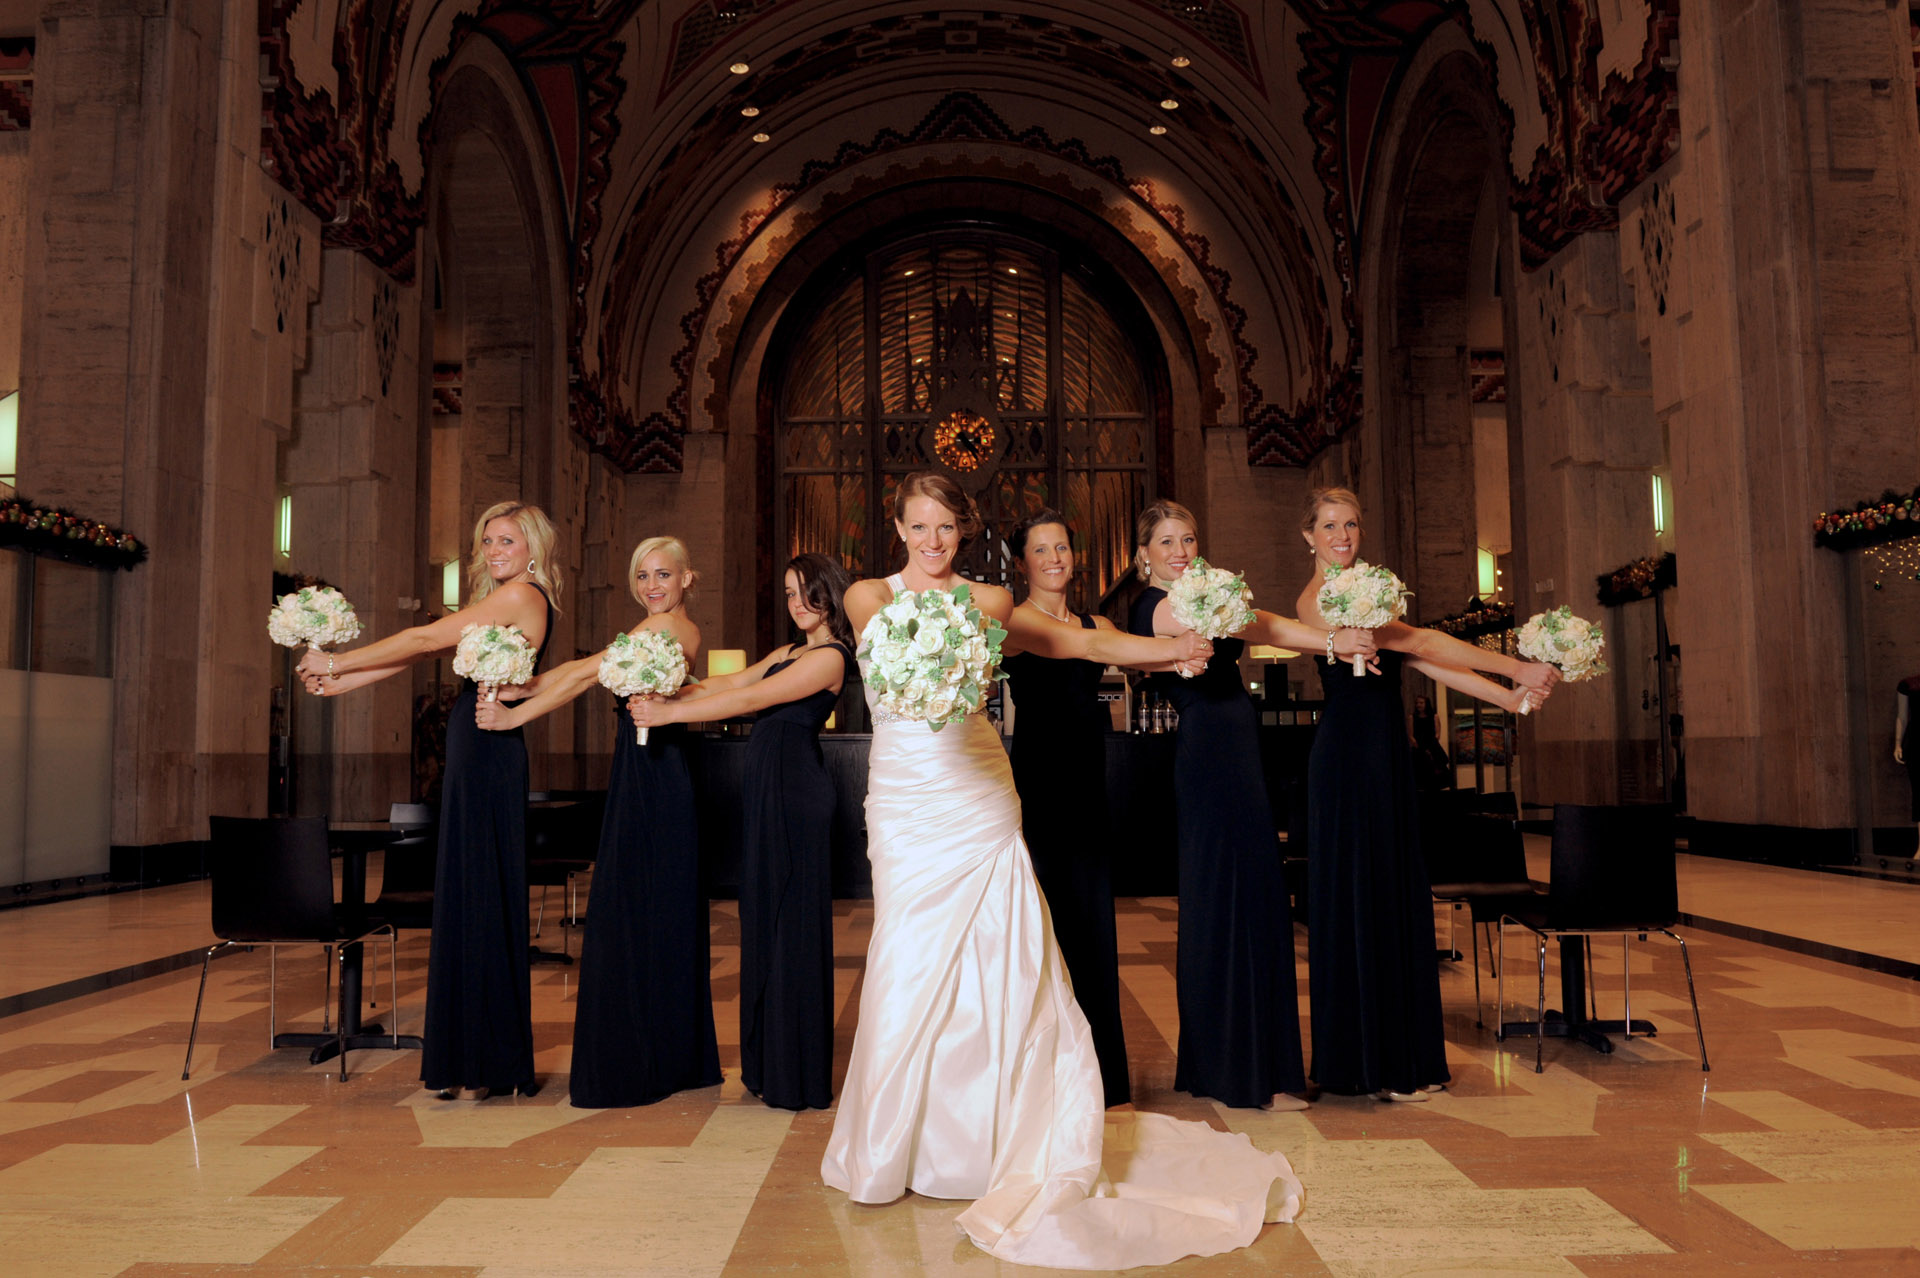 The Historic church Sweetest Heart of Mary and the Dearborn Inn of Detroit's historic church in Detroit and Dearborn, Michigan wedding photographer's photo of the bride and her bridesmaids at the historic Guardian building for wedding photos in Detroit, Michigan.